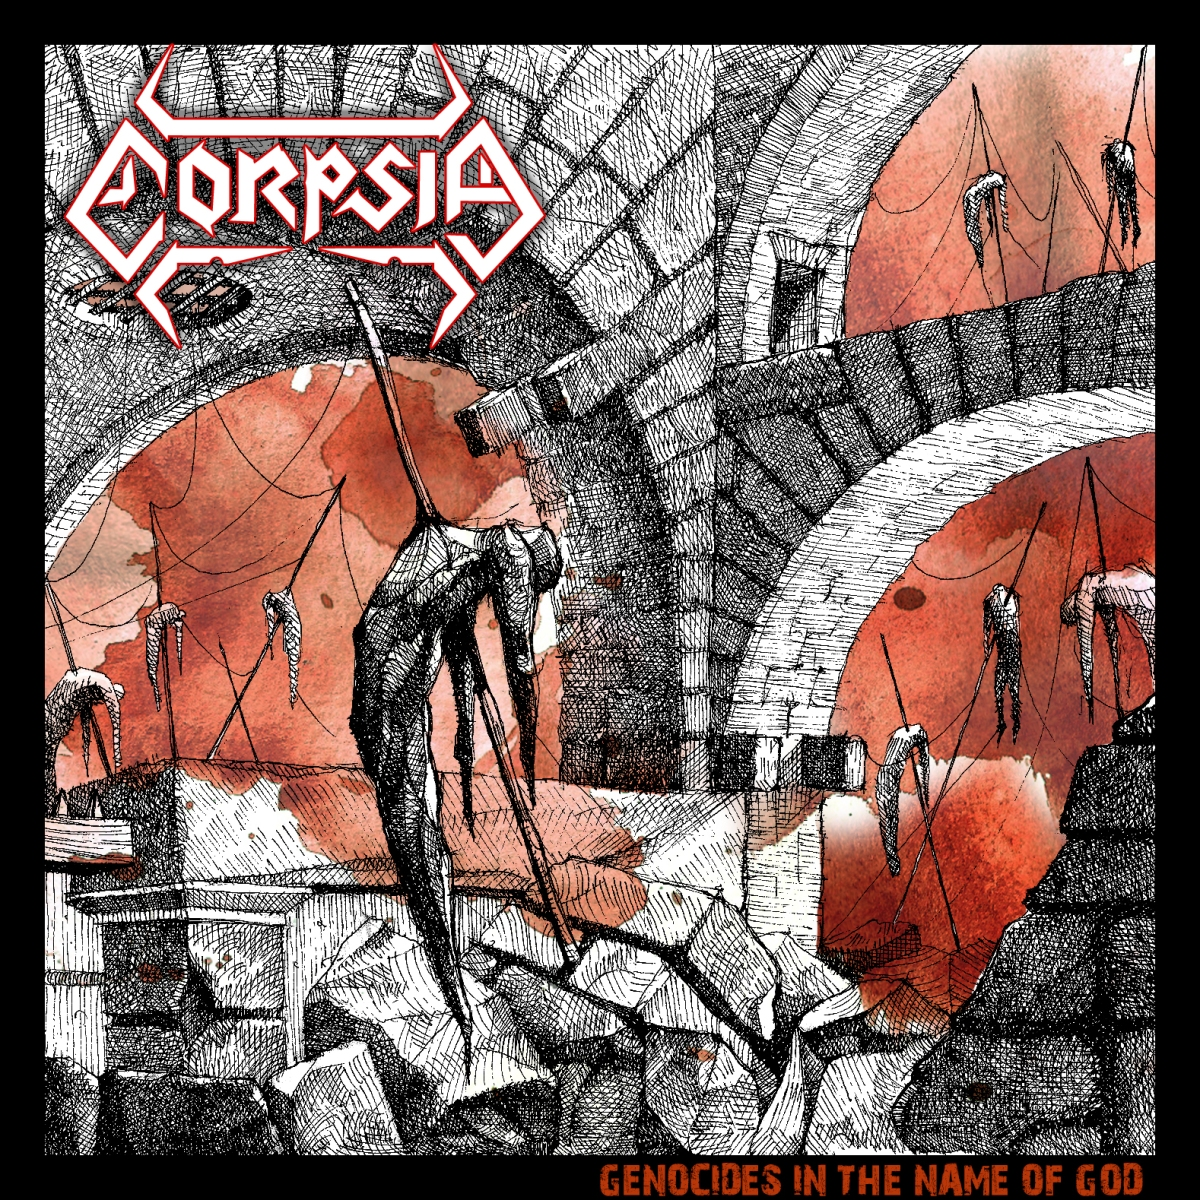 REVIEW: CORPSIA - GENOCIDES IN THE NAME OF GOD